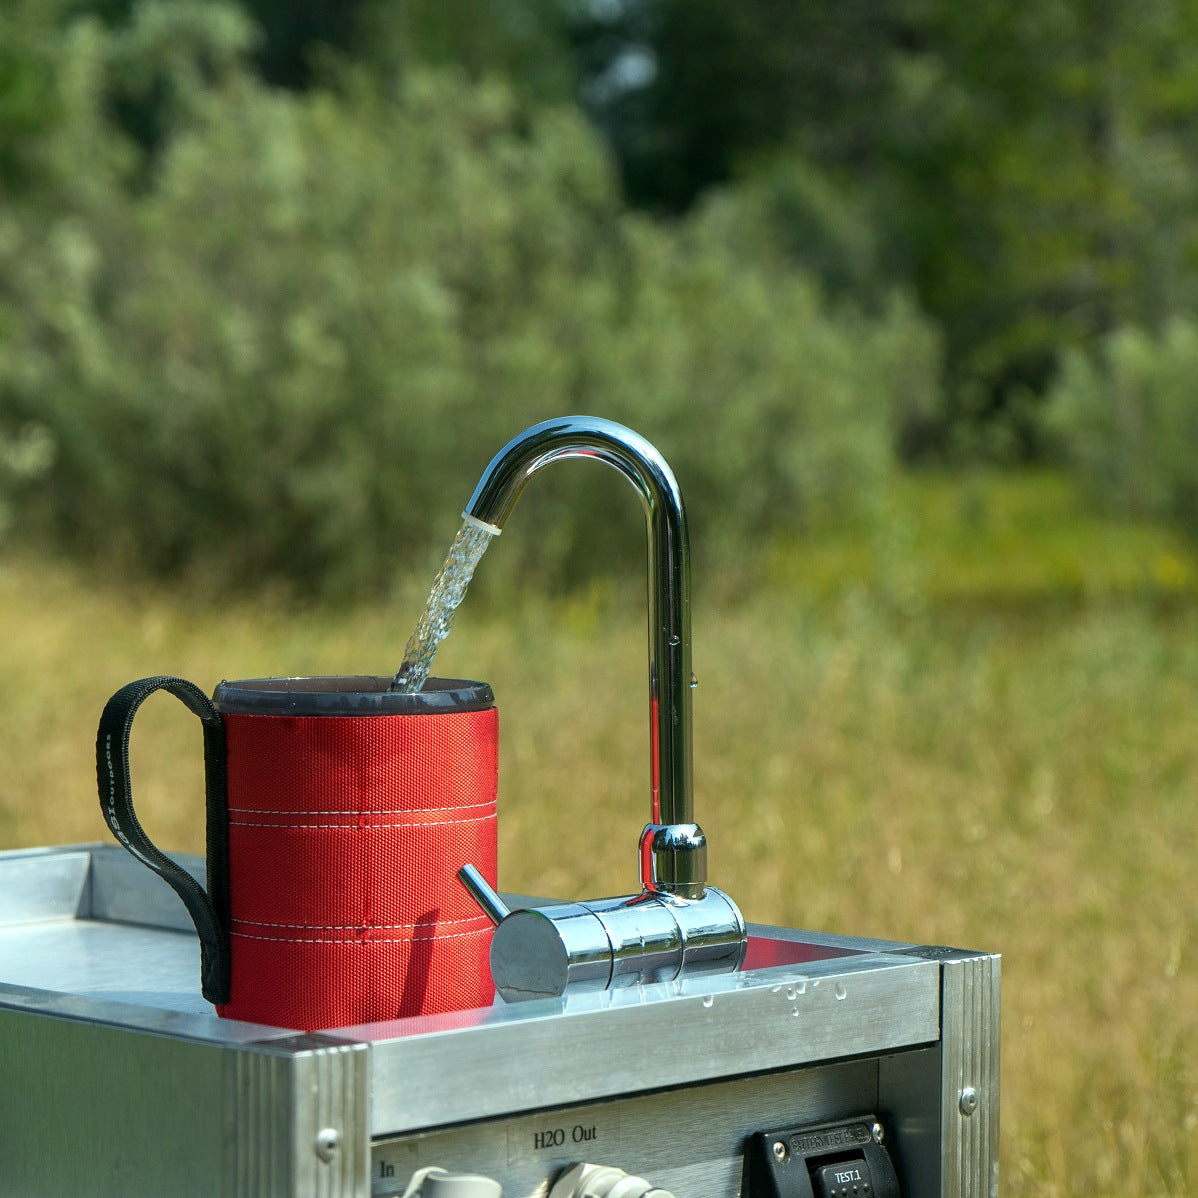 Camp Sink With Faucet.Portable Camping Sink With Pump Water Filter Trail Kitchens